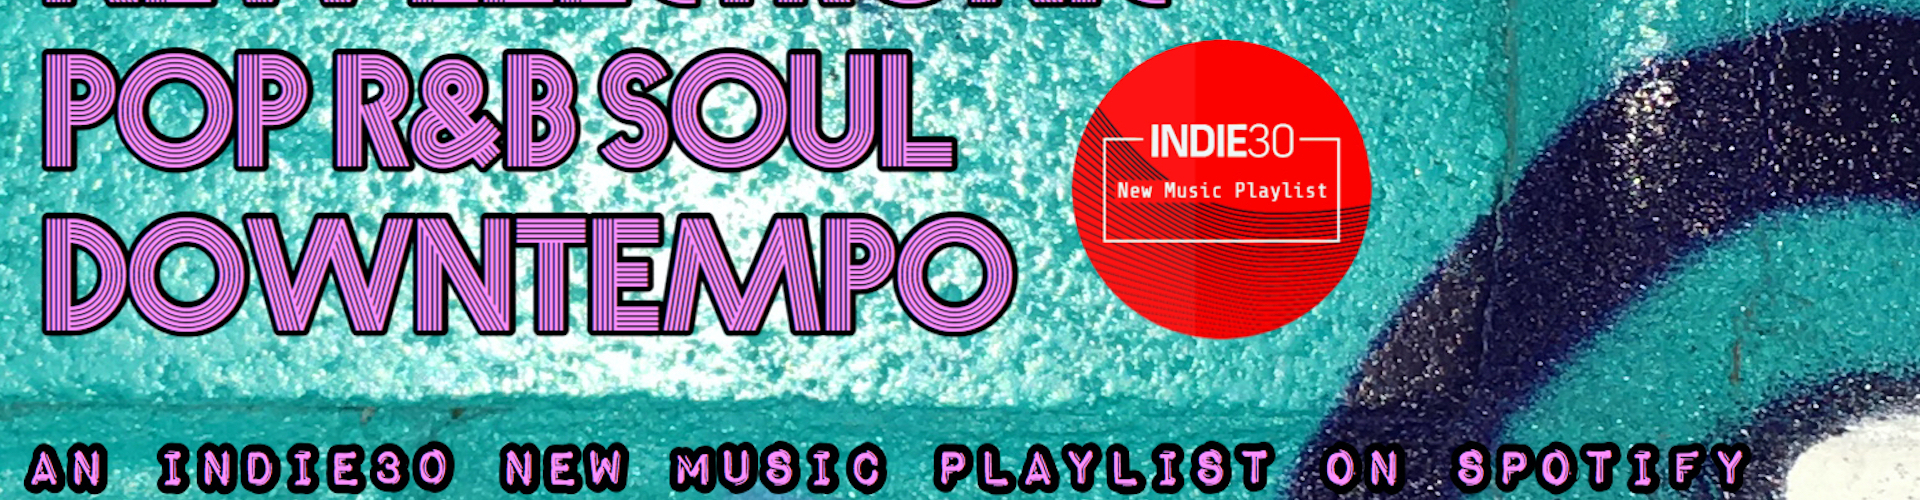 Electronic-Pop-RB-Soul-Down...-BANNER